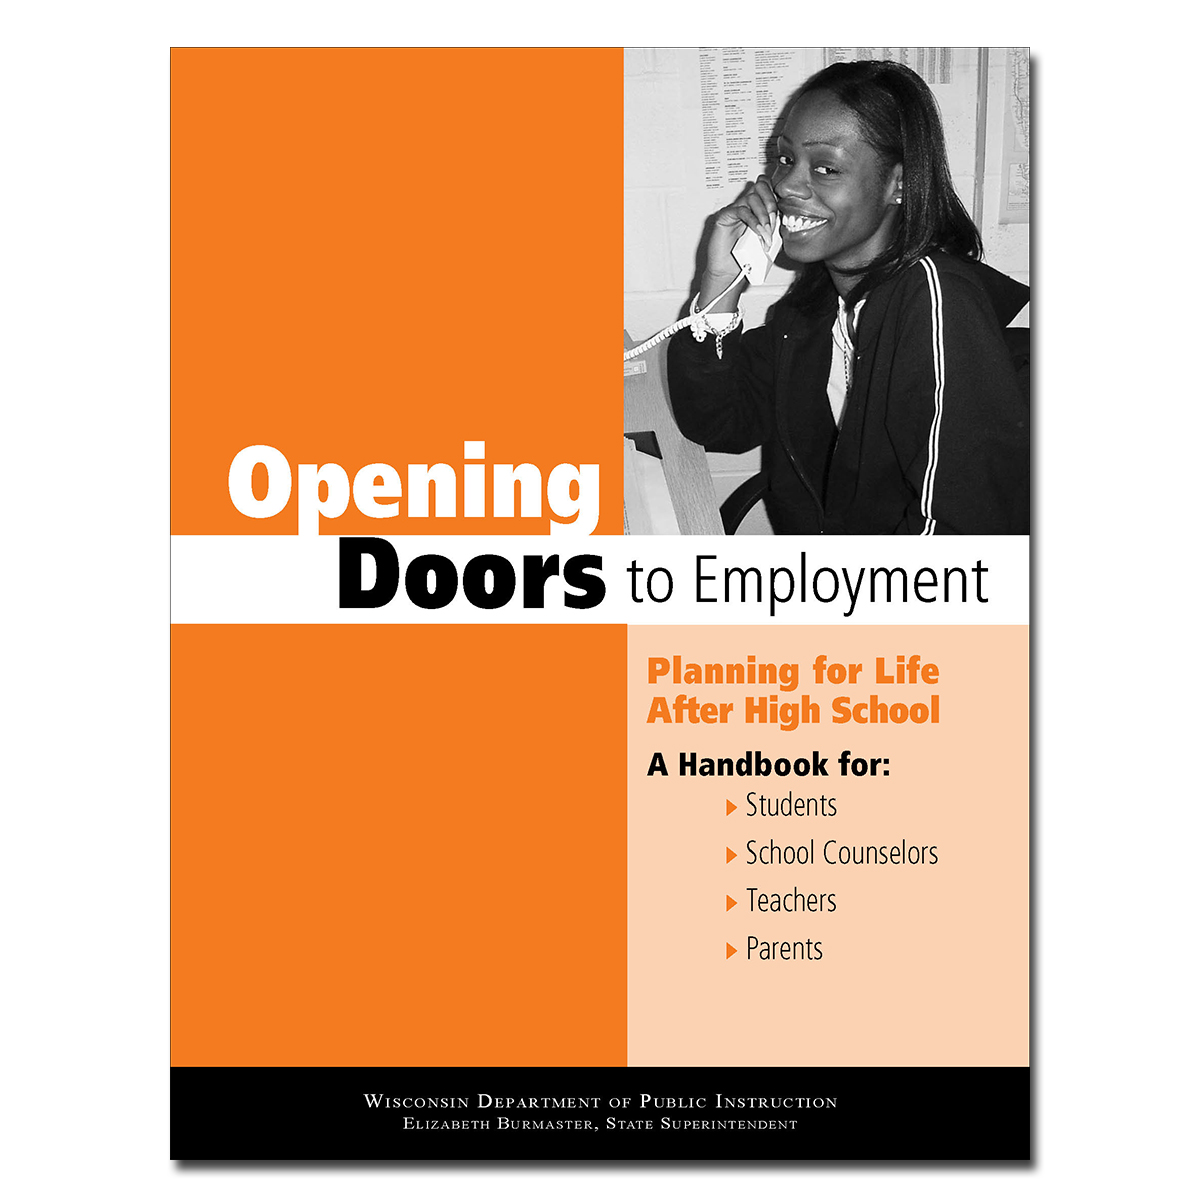 Opening Doors to Employment in English Cover